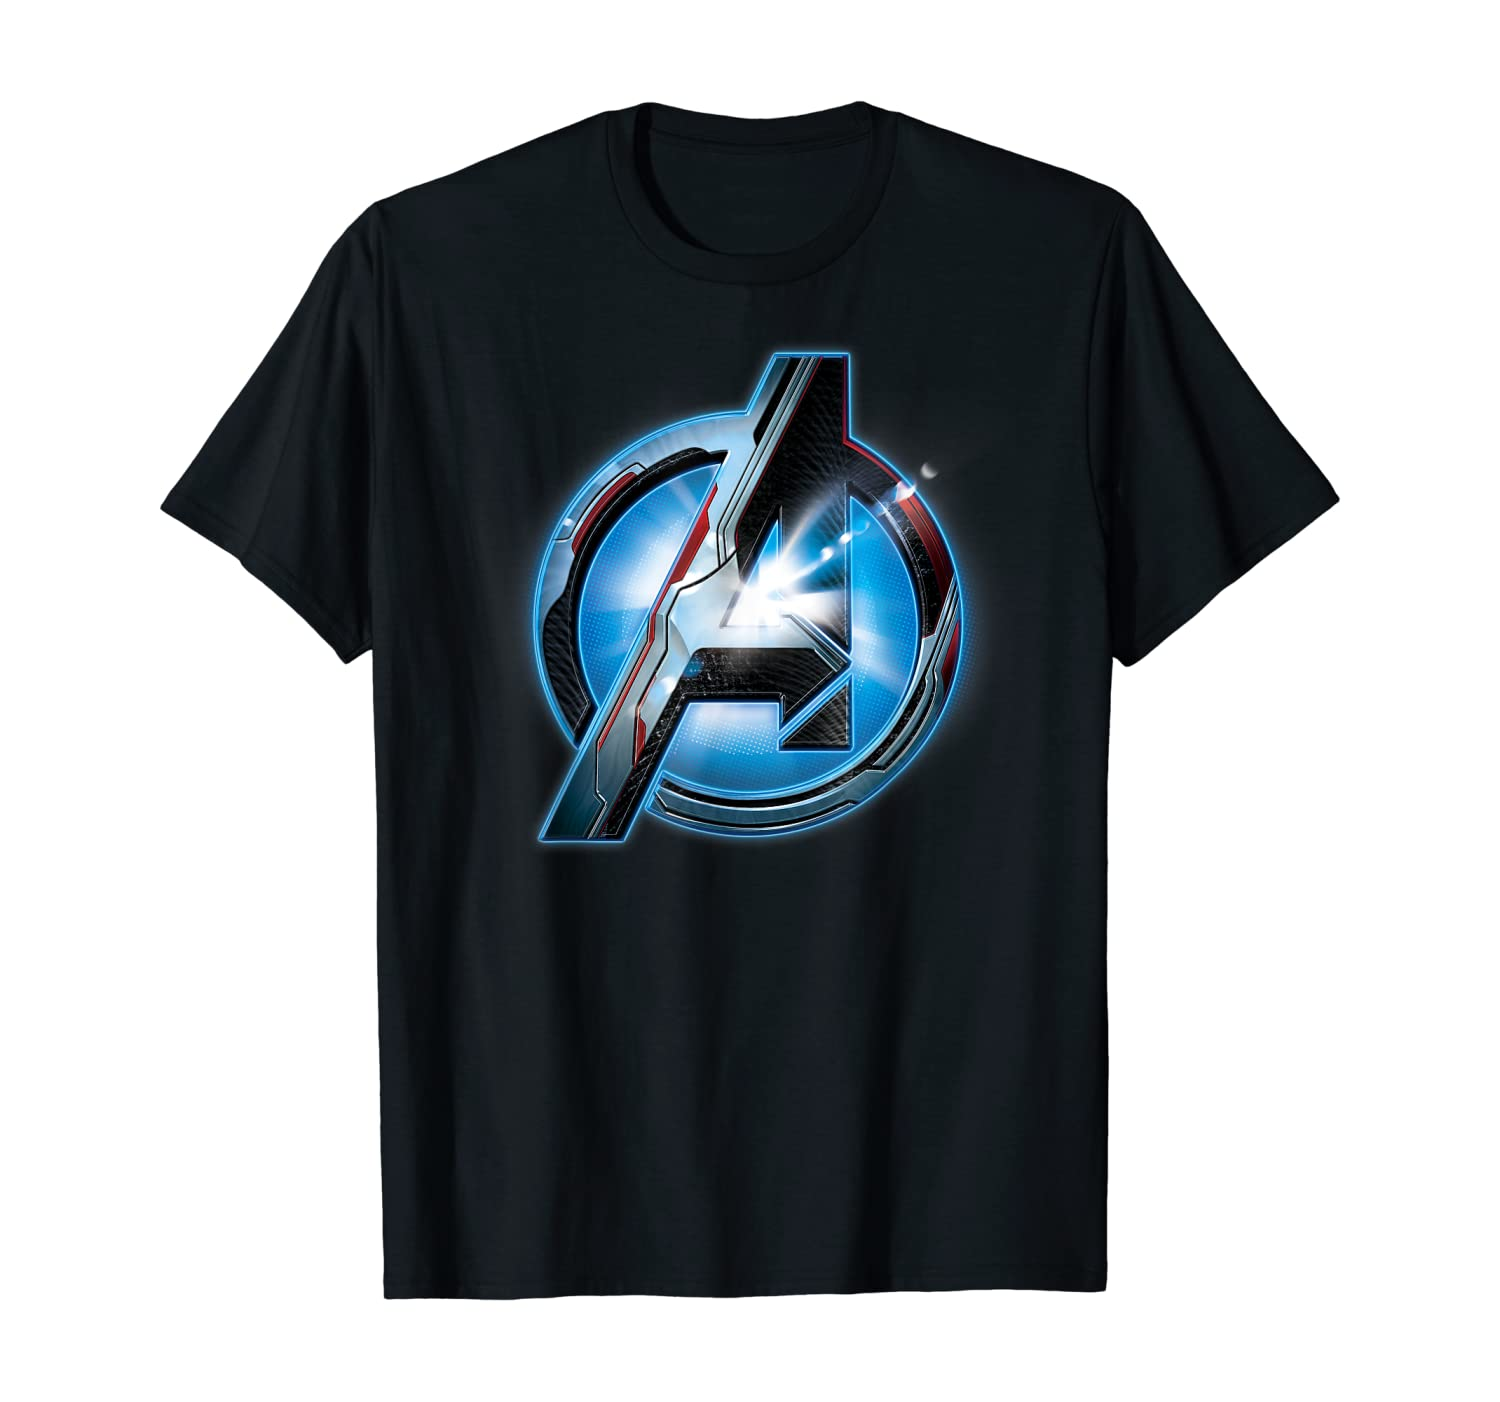 amazon com marvel avengers endgame uniform logo t shirt clothing marvel avengers endgame uniform logo t shirt